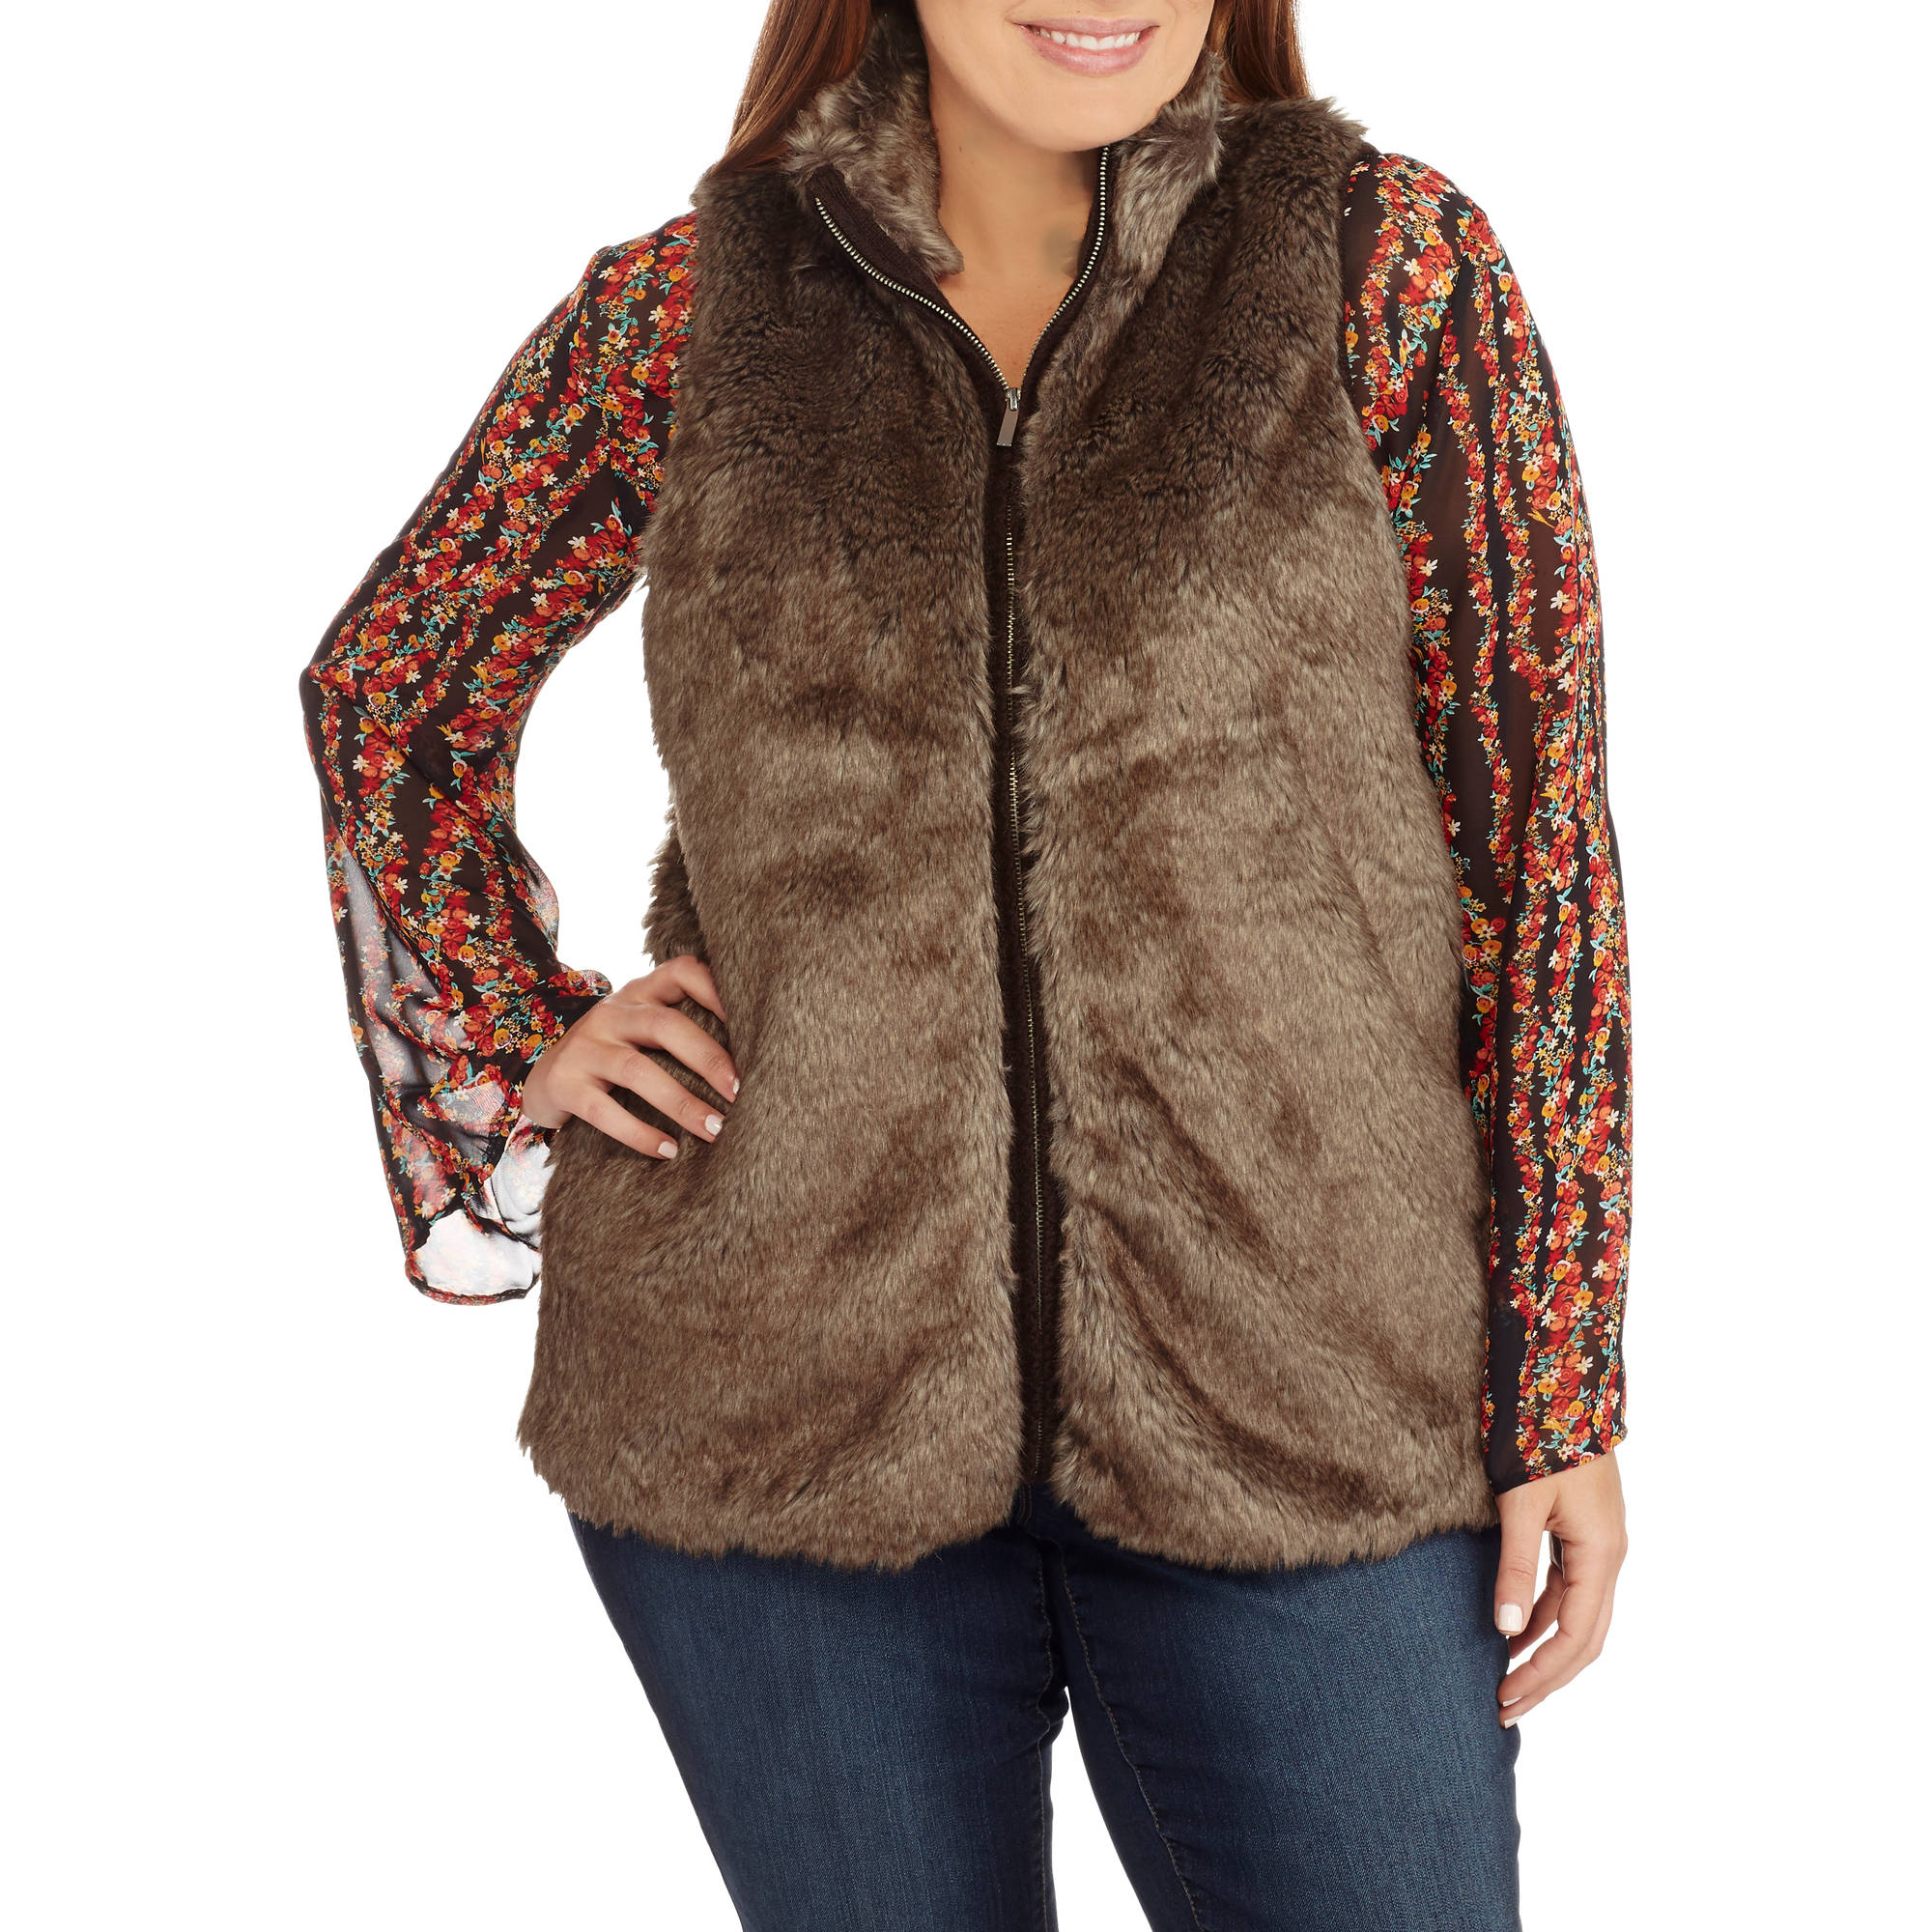 Heart and Crush Women's Plus Faux Fur Zip Up Vest